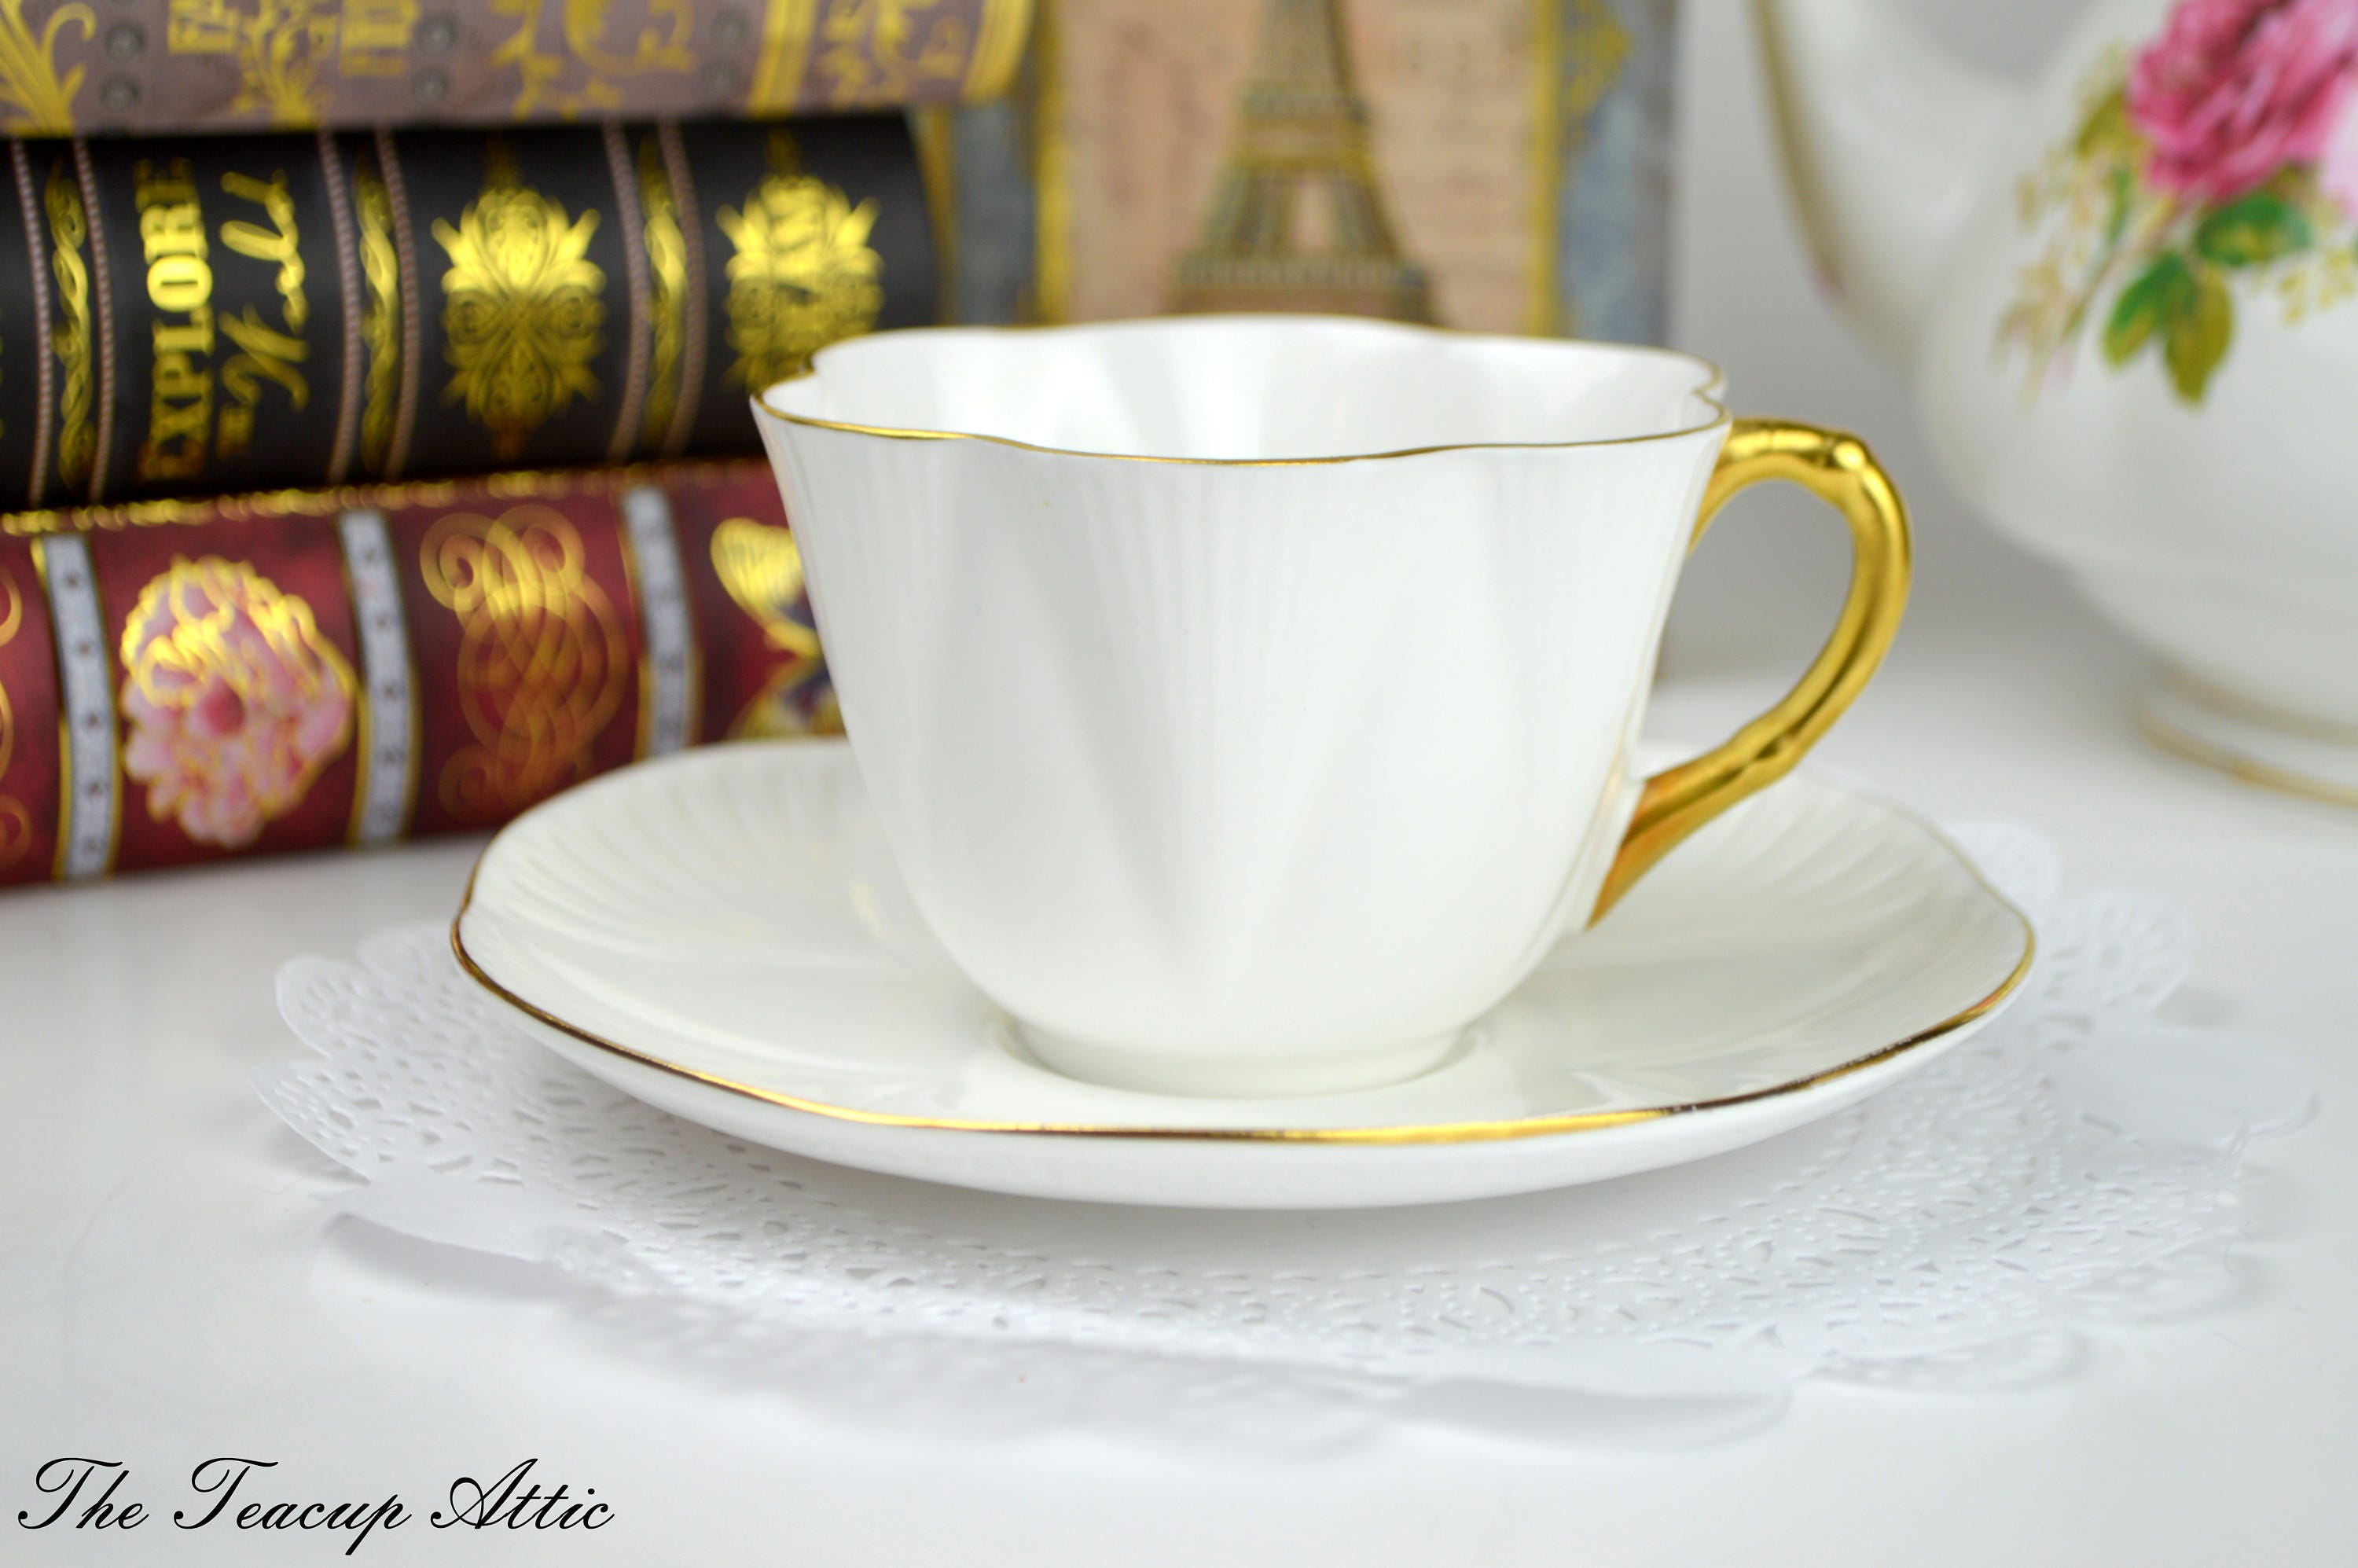 Shelley Brilliant White Dainty Shape Teacup And Saucer Set, English Bone China Tea Cup Set, Wedding Gift, ca. 1945-1966